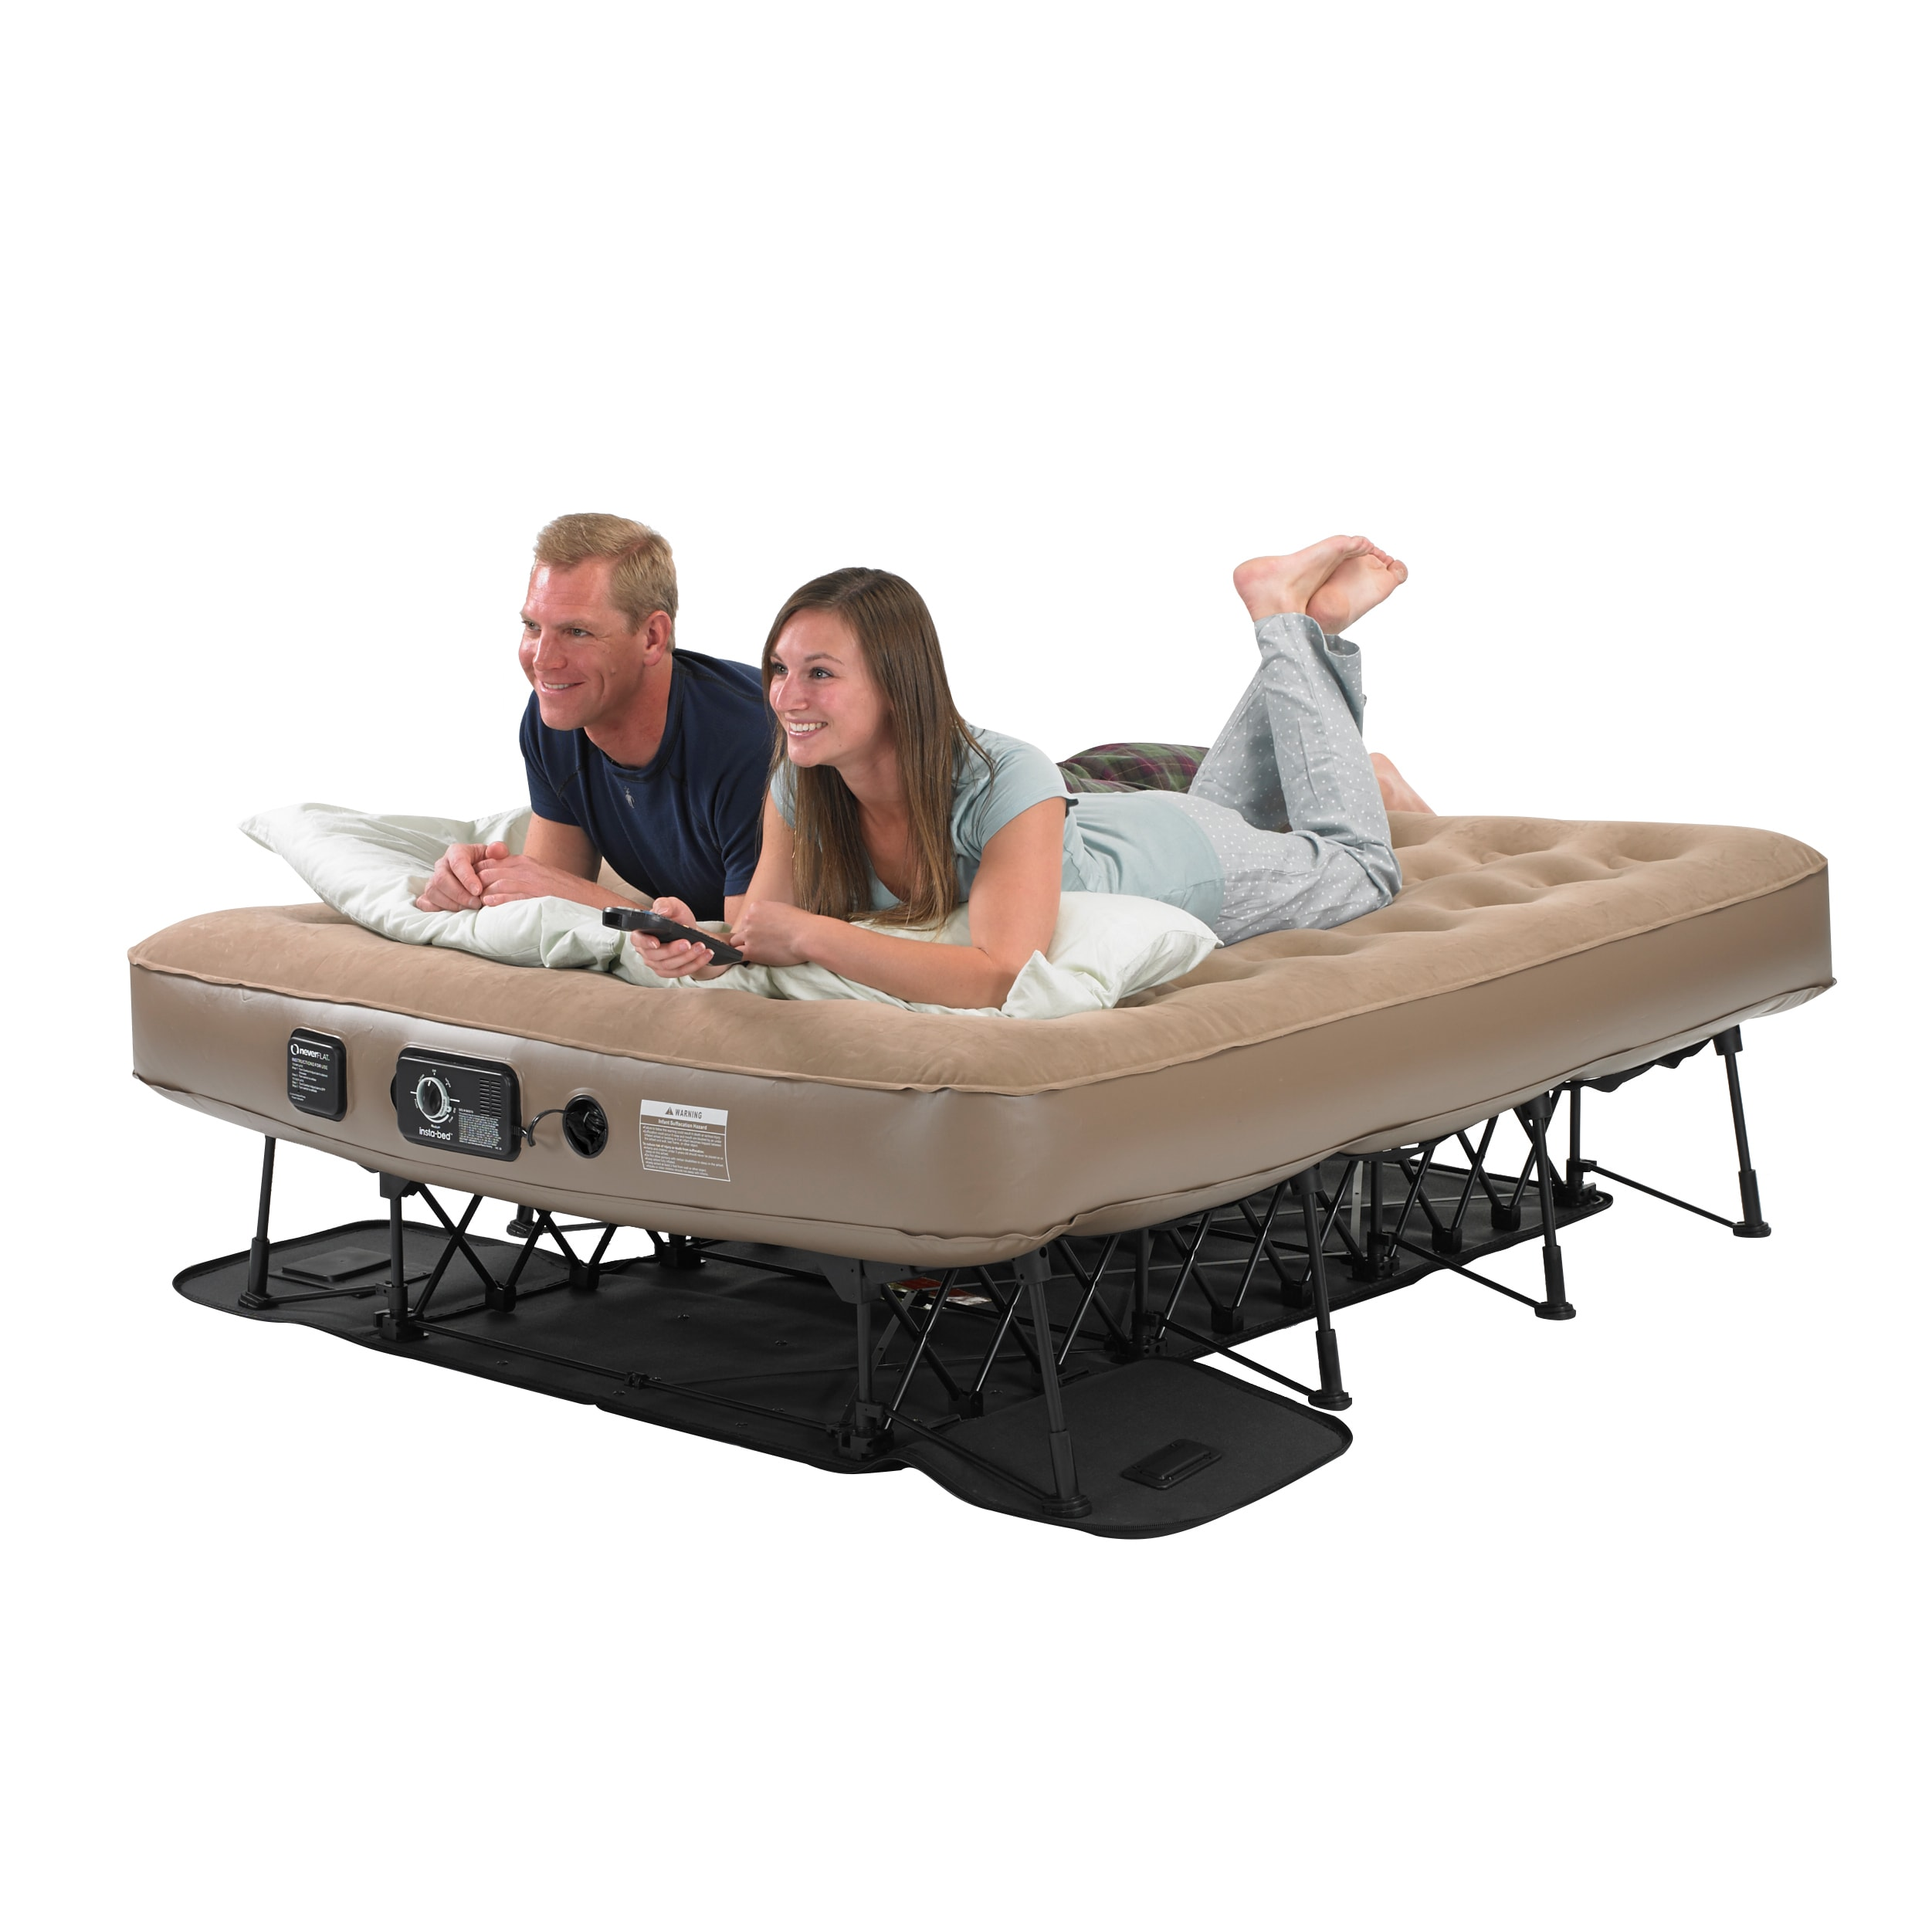 overstock free air mattress serta garden insta iii size raised with twin shipping pump product today ac airbed home